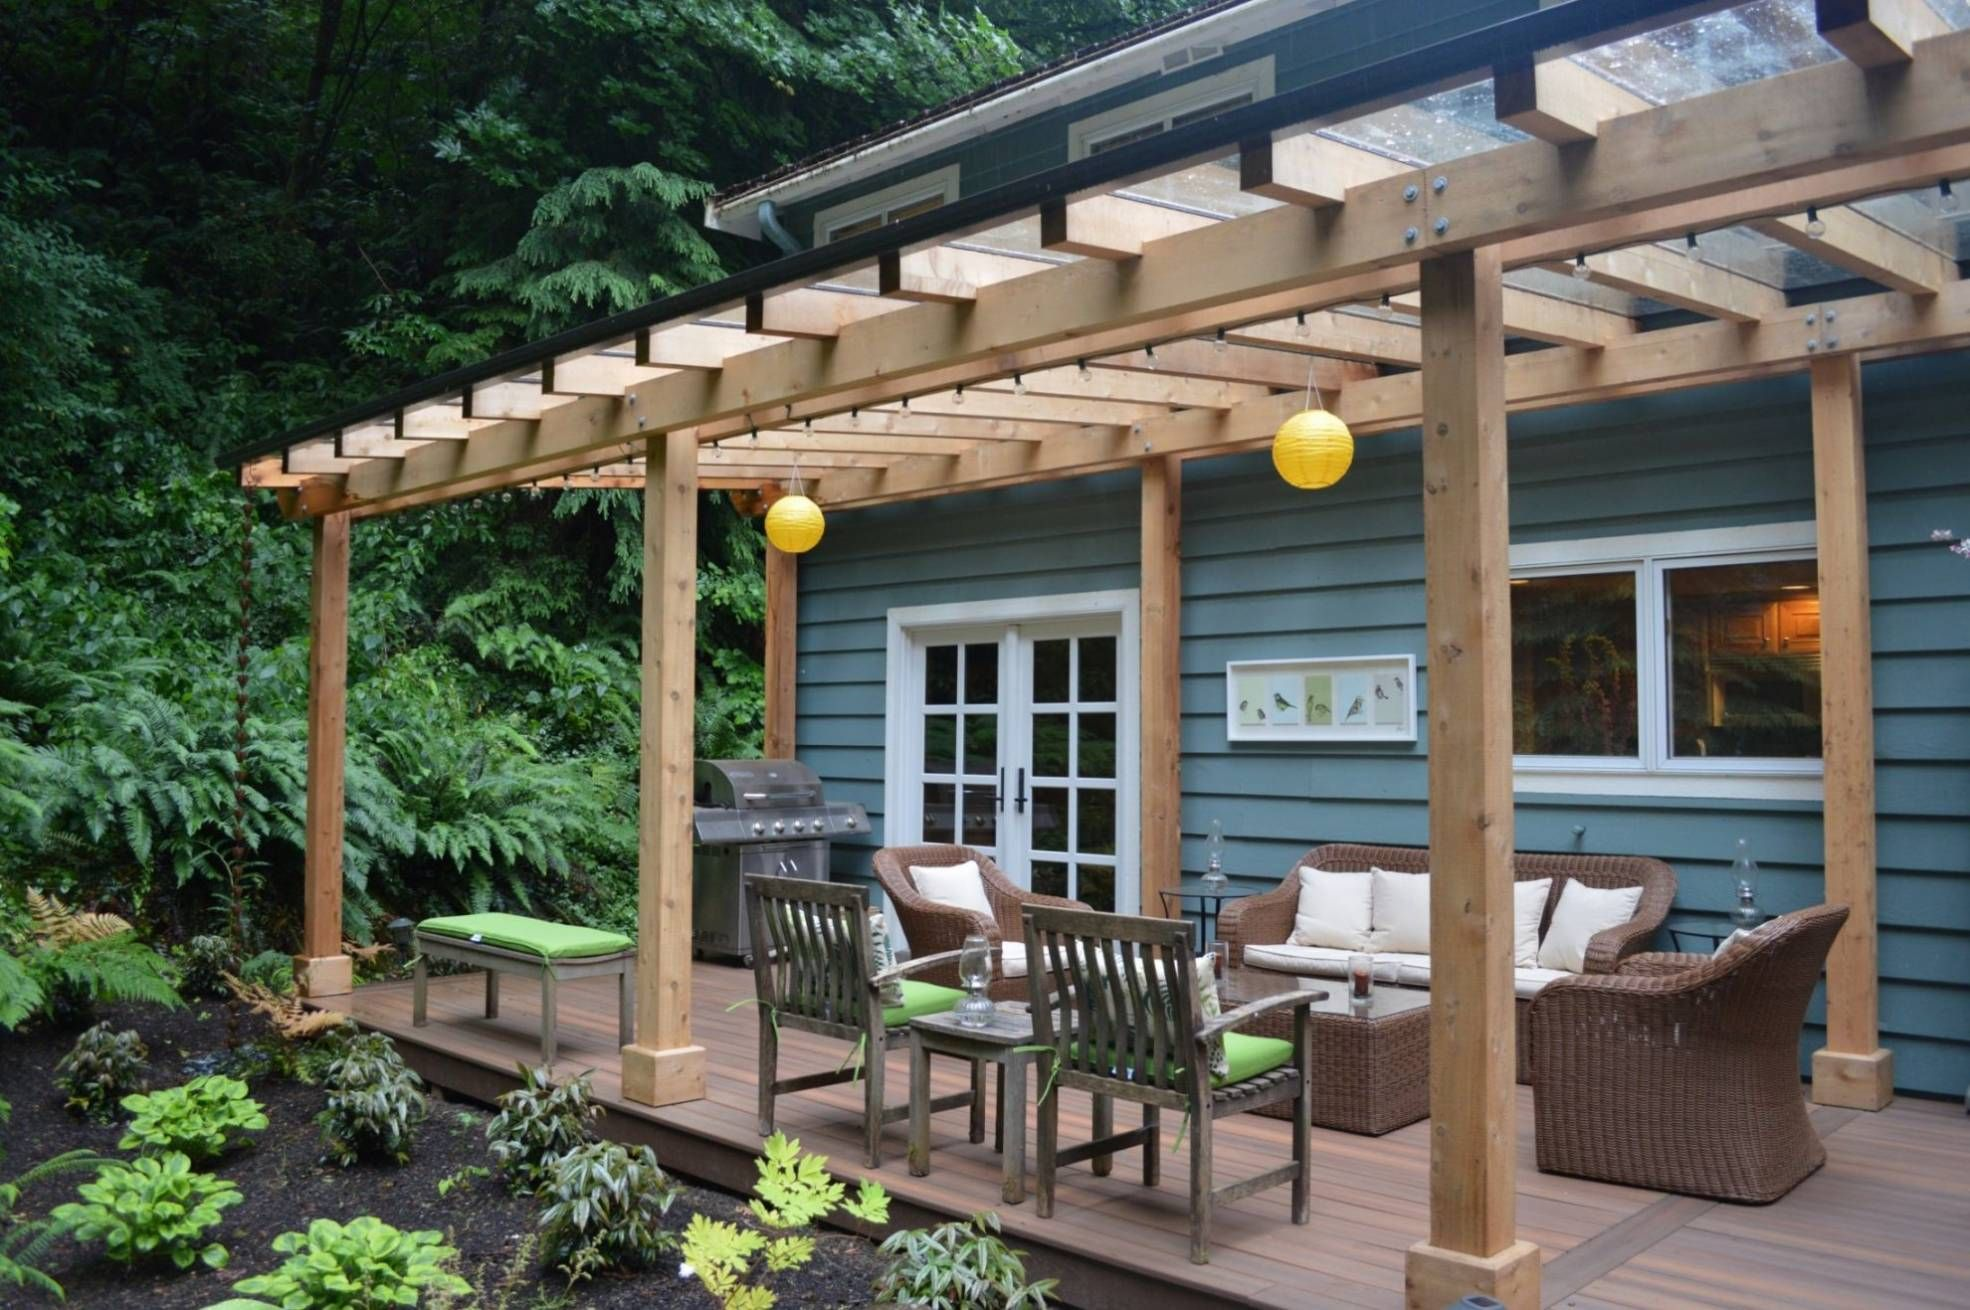 Want A Covered Deck Or Partially Covered Deck Check Out Our Amazing Photo Gallery Featuring 50 Amazing And Diver Building A Deck Covered Decks Decks Backyard